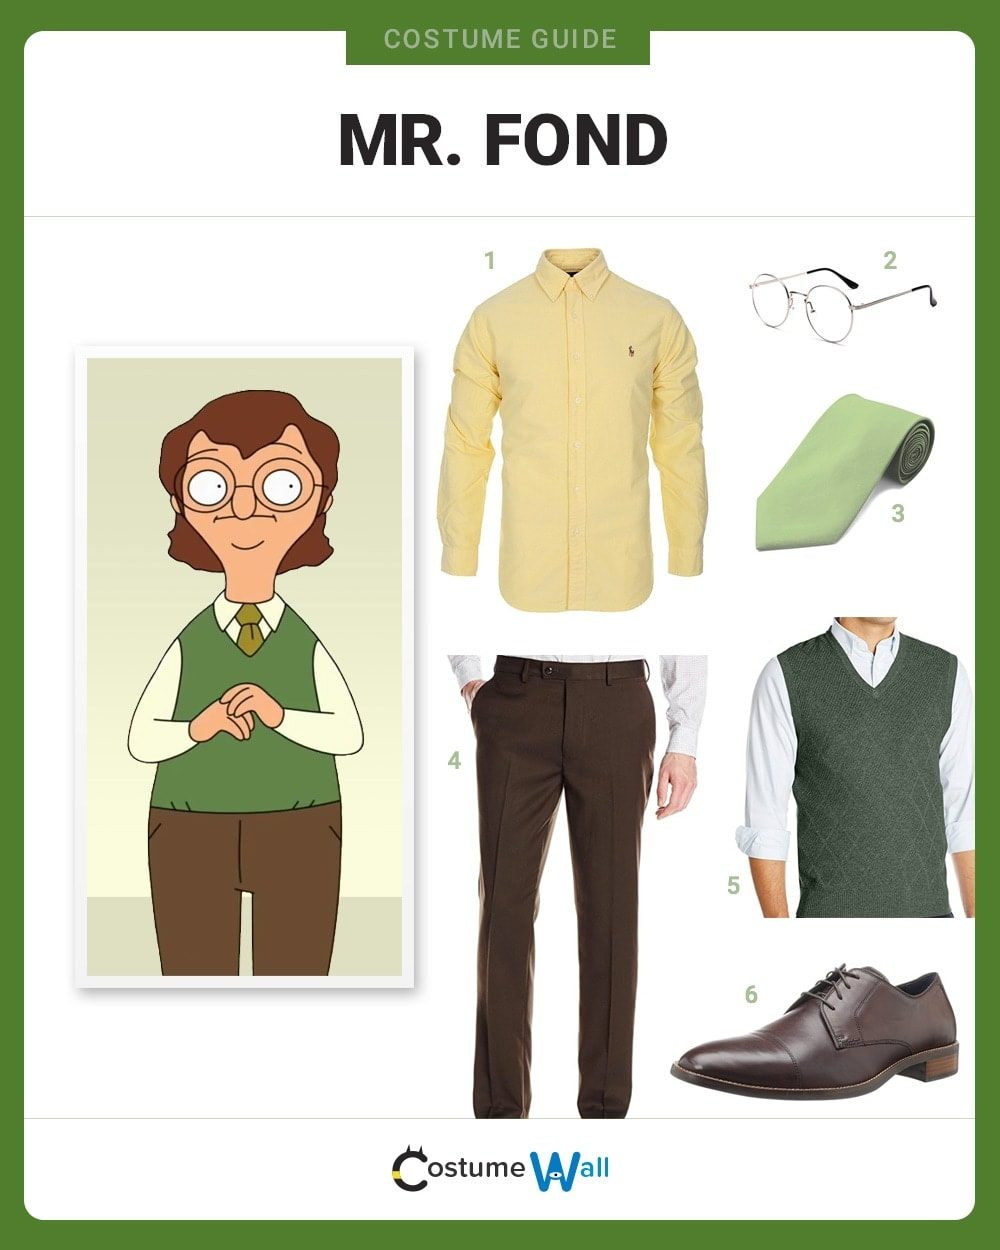 Mr. Fond Costume Guide